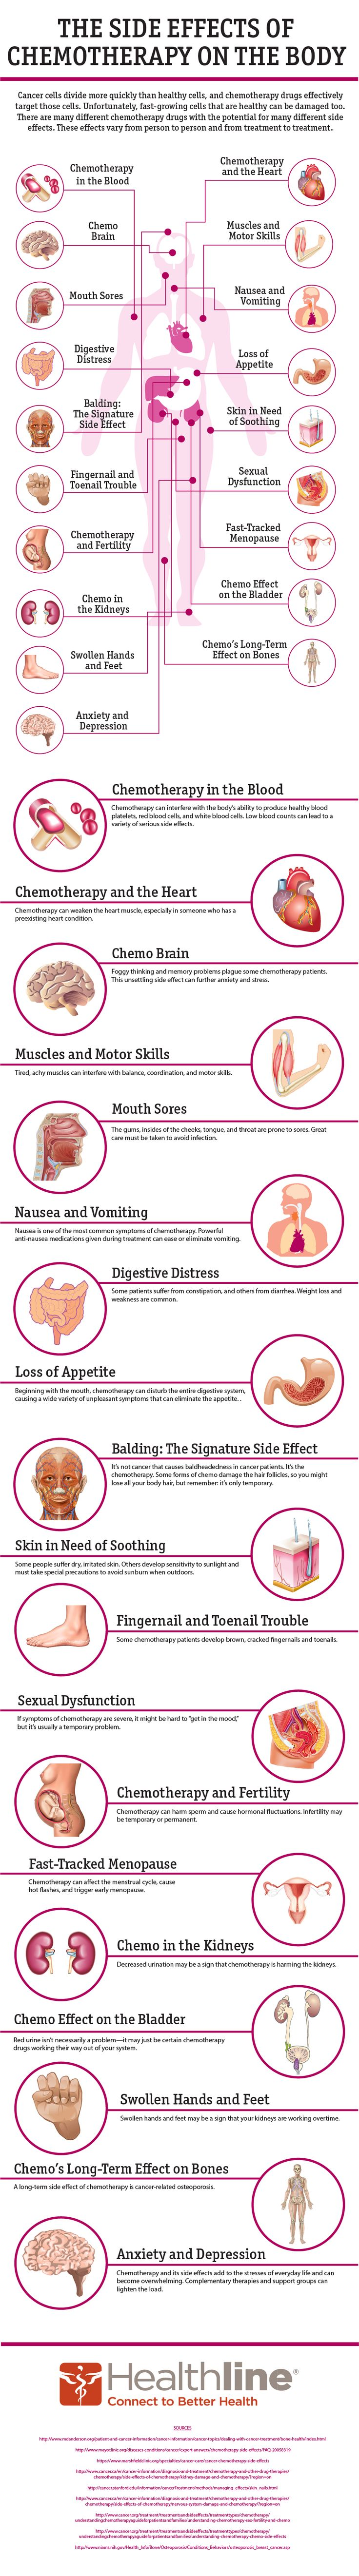 Check out a virtual guide of 19 effects of chemotherapy on the body: cancer #infographic www.treatmintbox.com